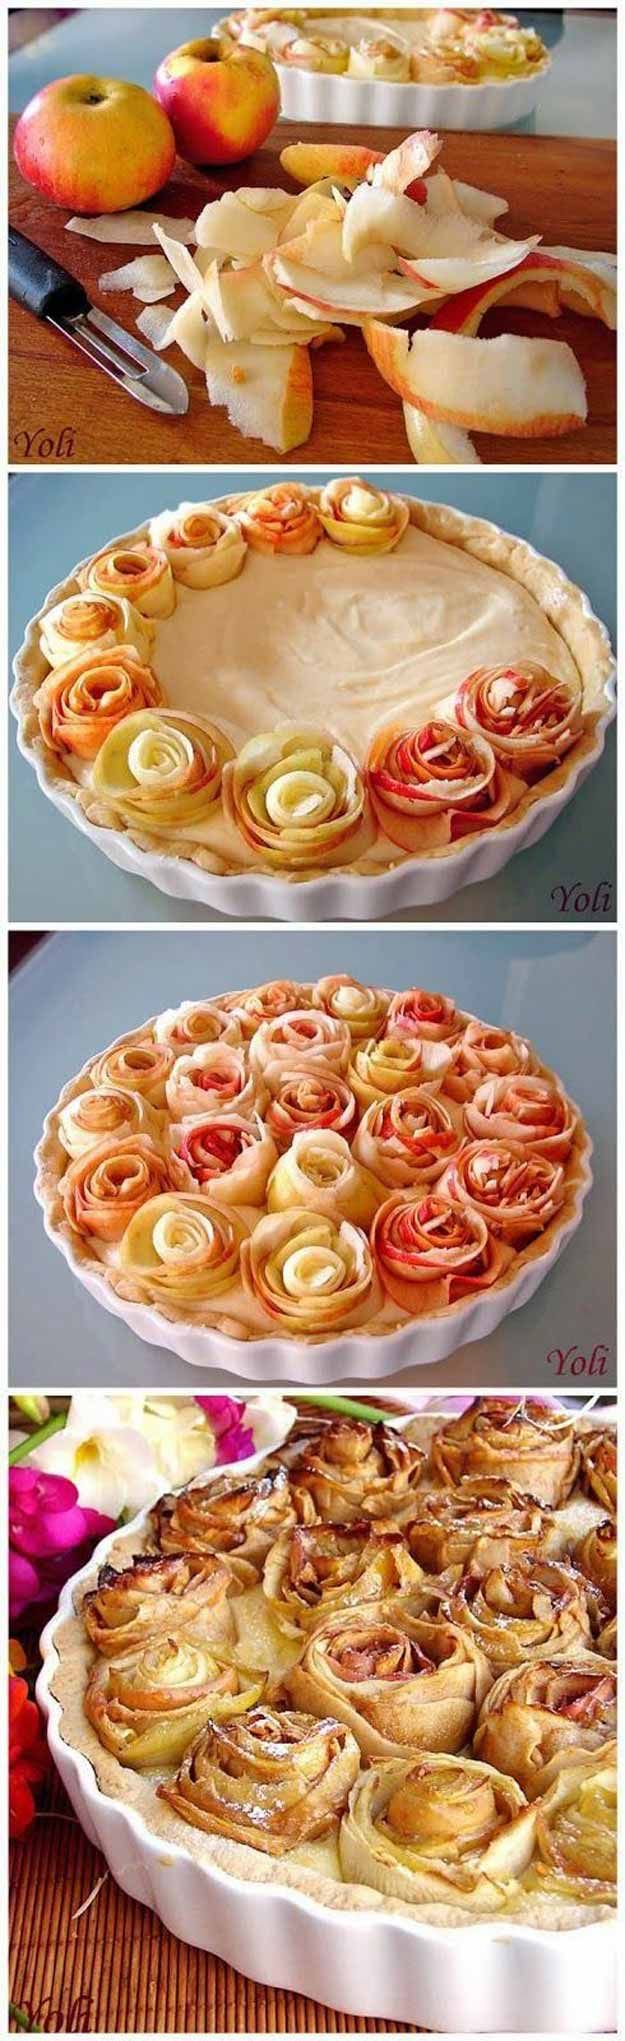 Homemade Apple Pie With Roses | 10 Appetizing Apple Pie Recipe Ideas